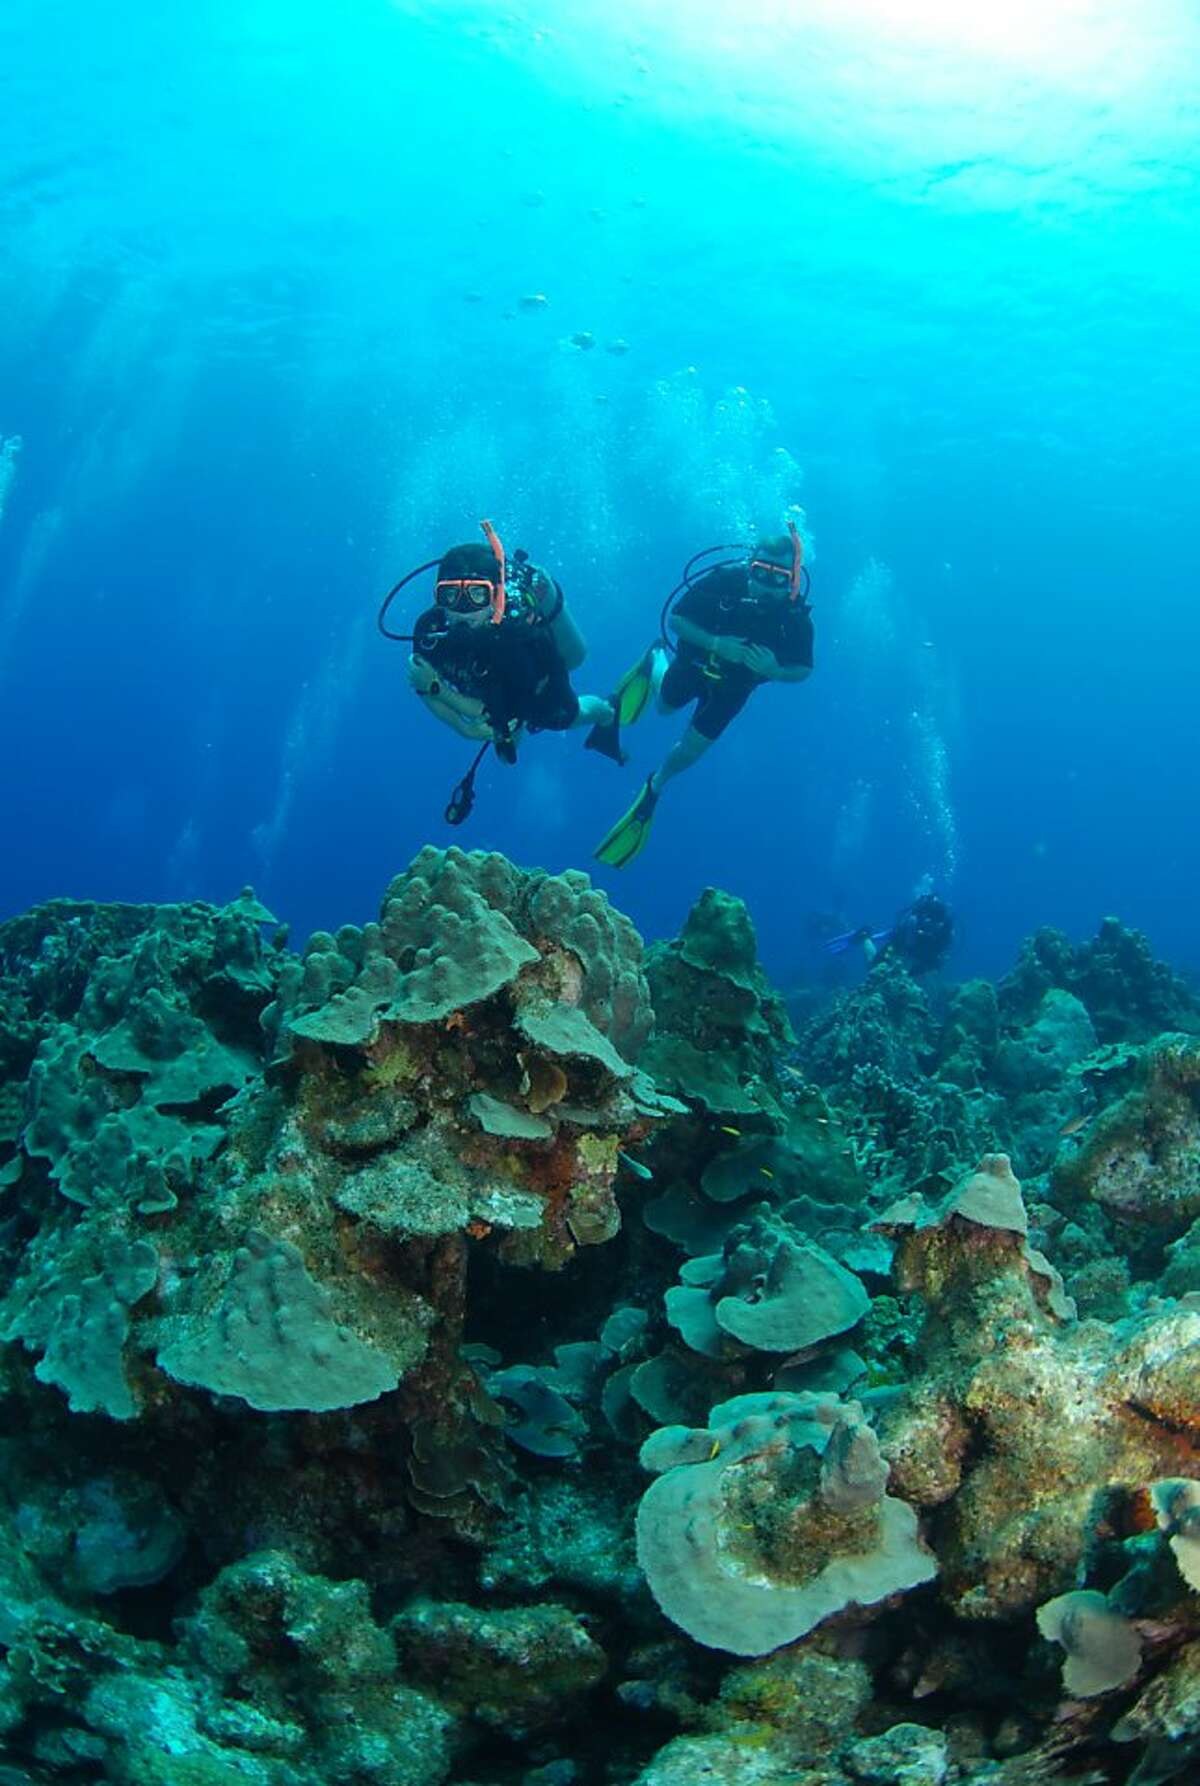 Divers above Mushroom Forest coral reef, Curacao.